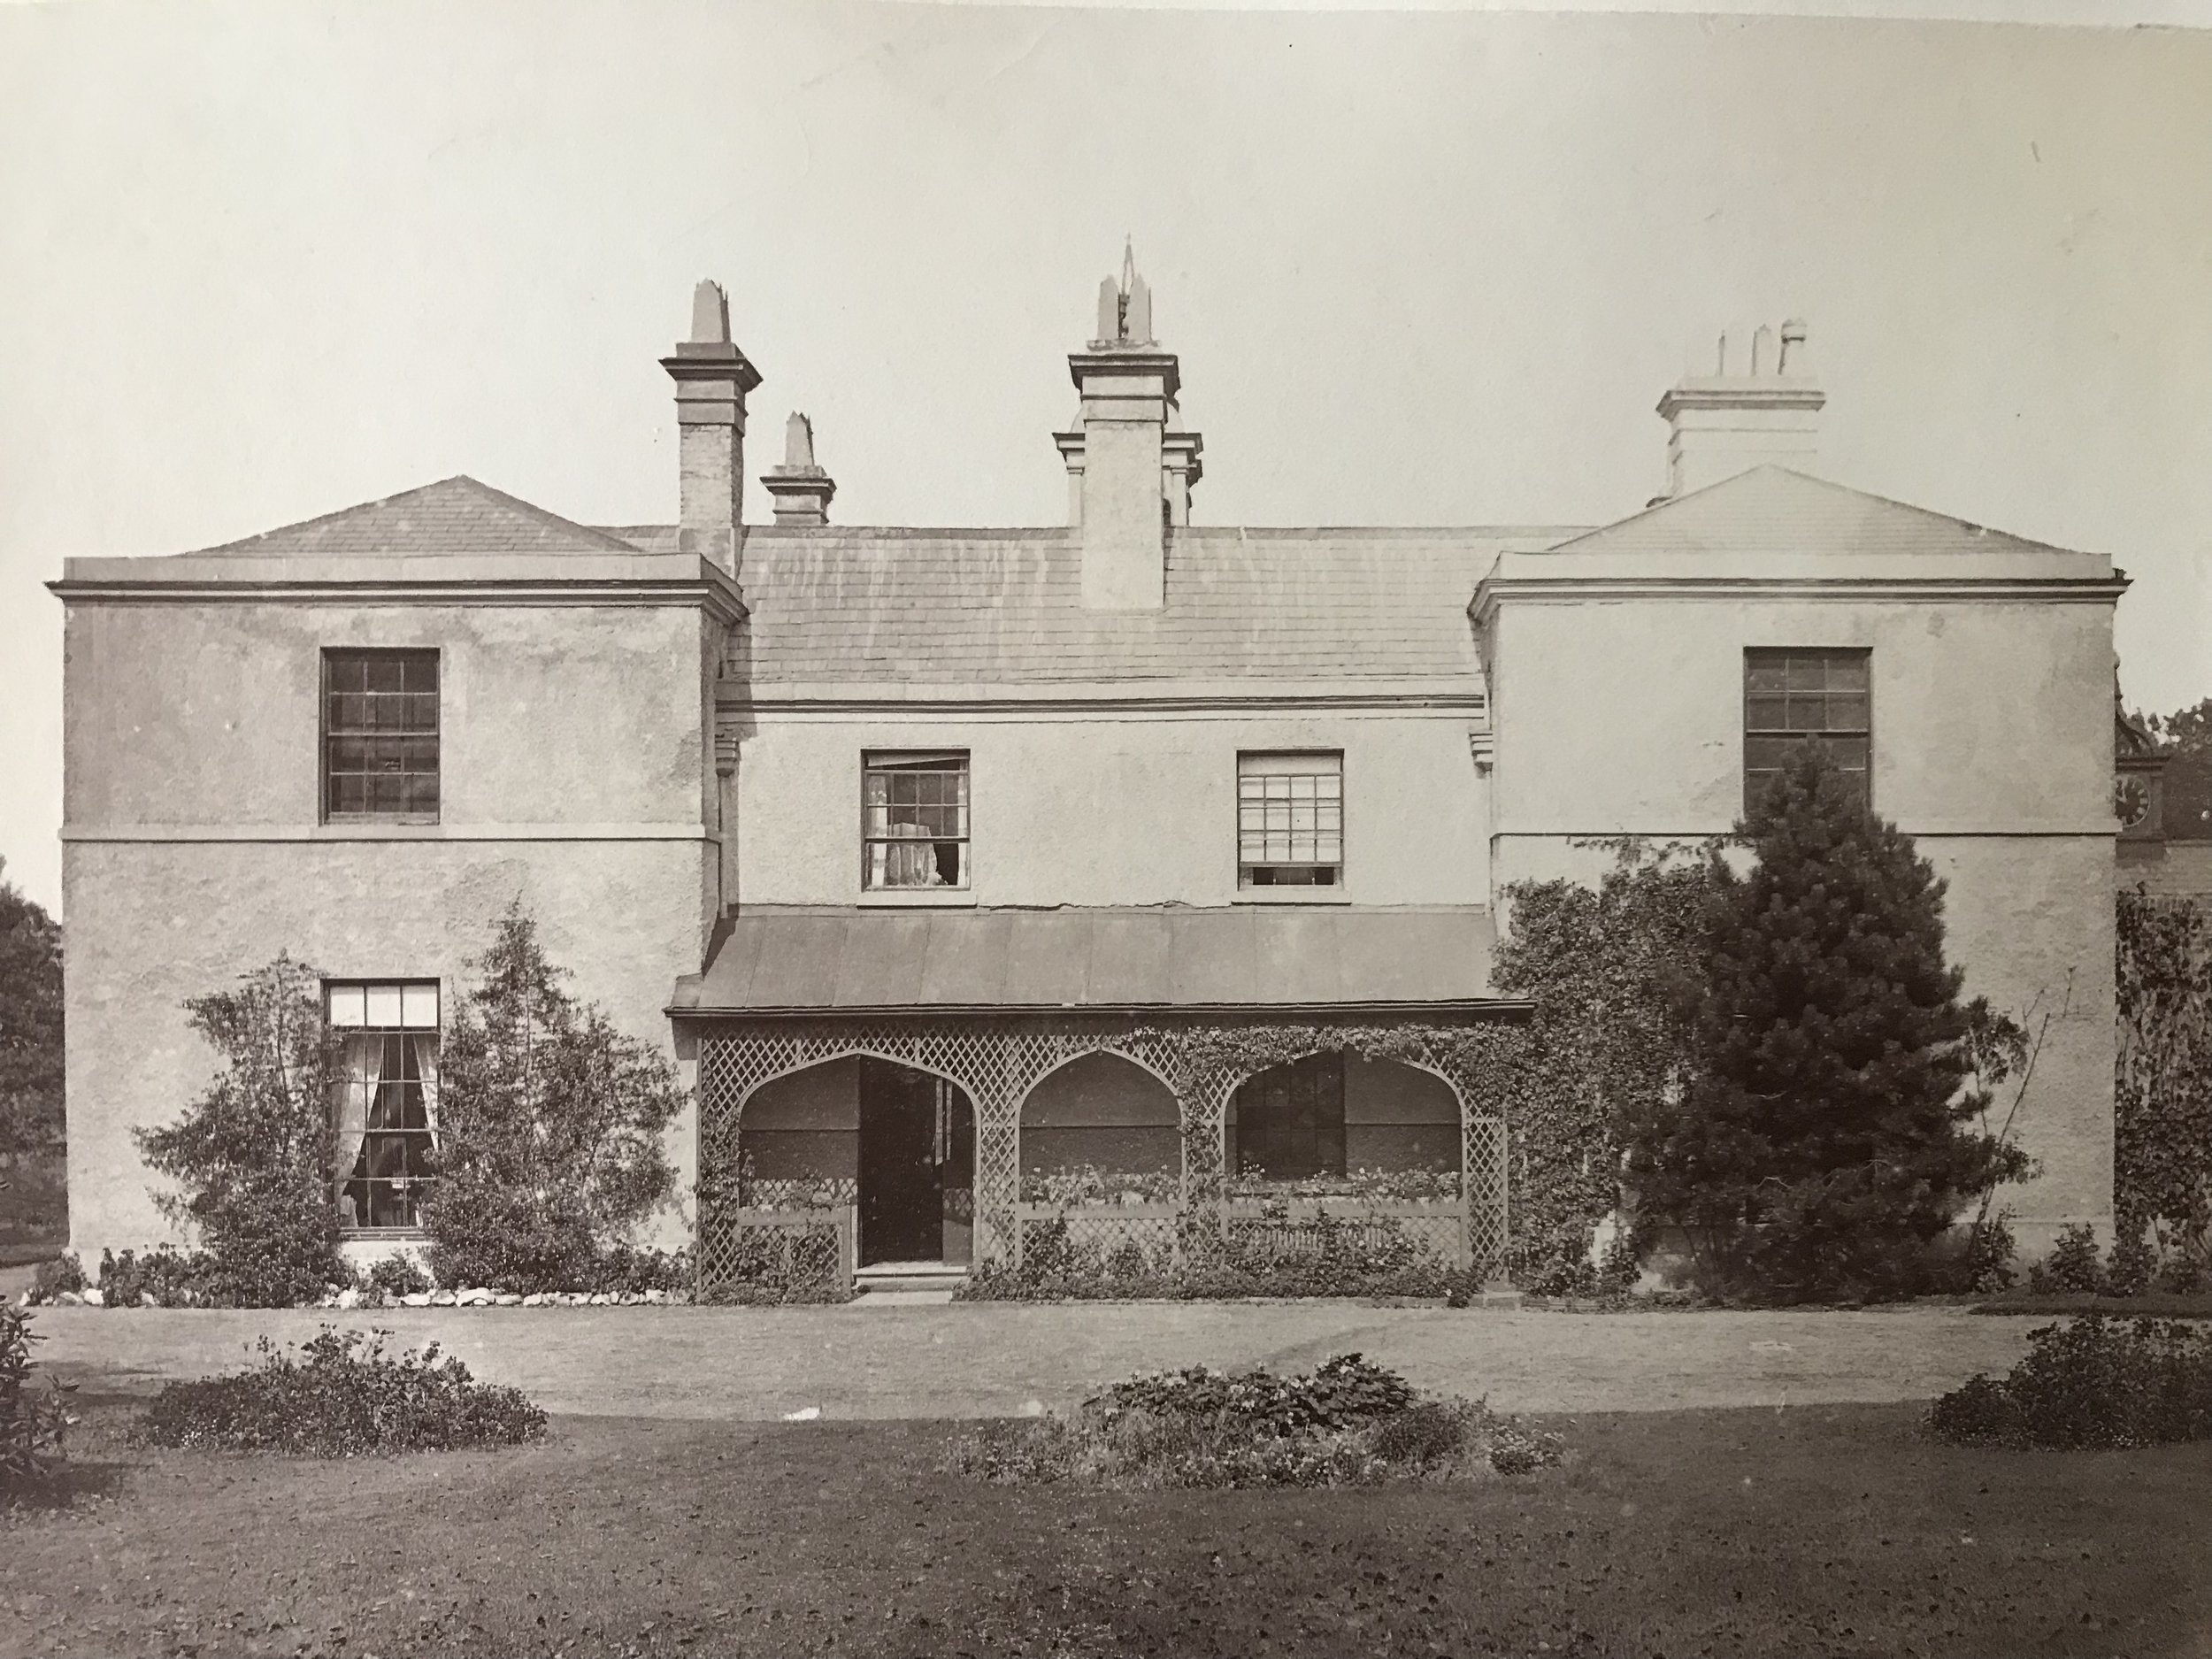 Heathfield Hall in Handsworth where James Watt lived from 1790-1819.